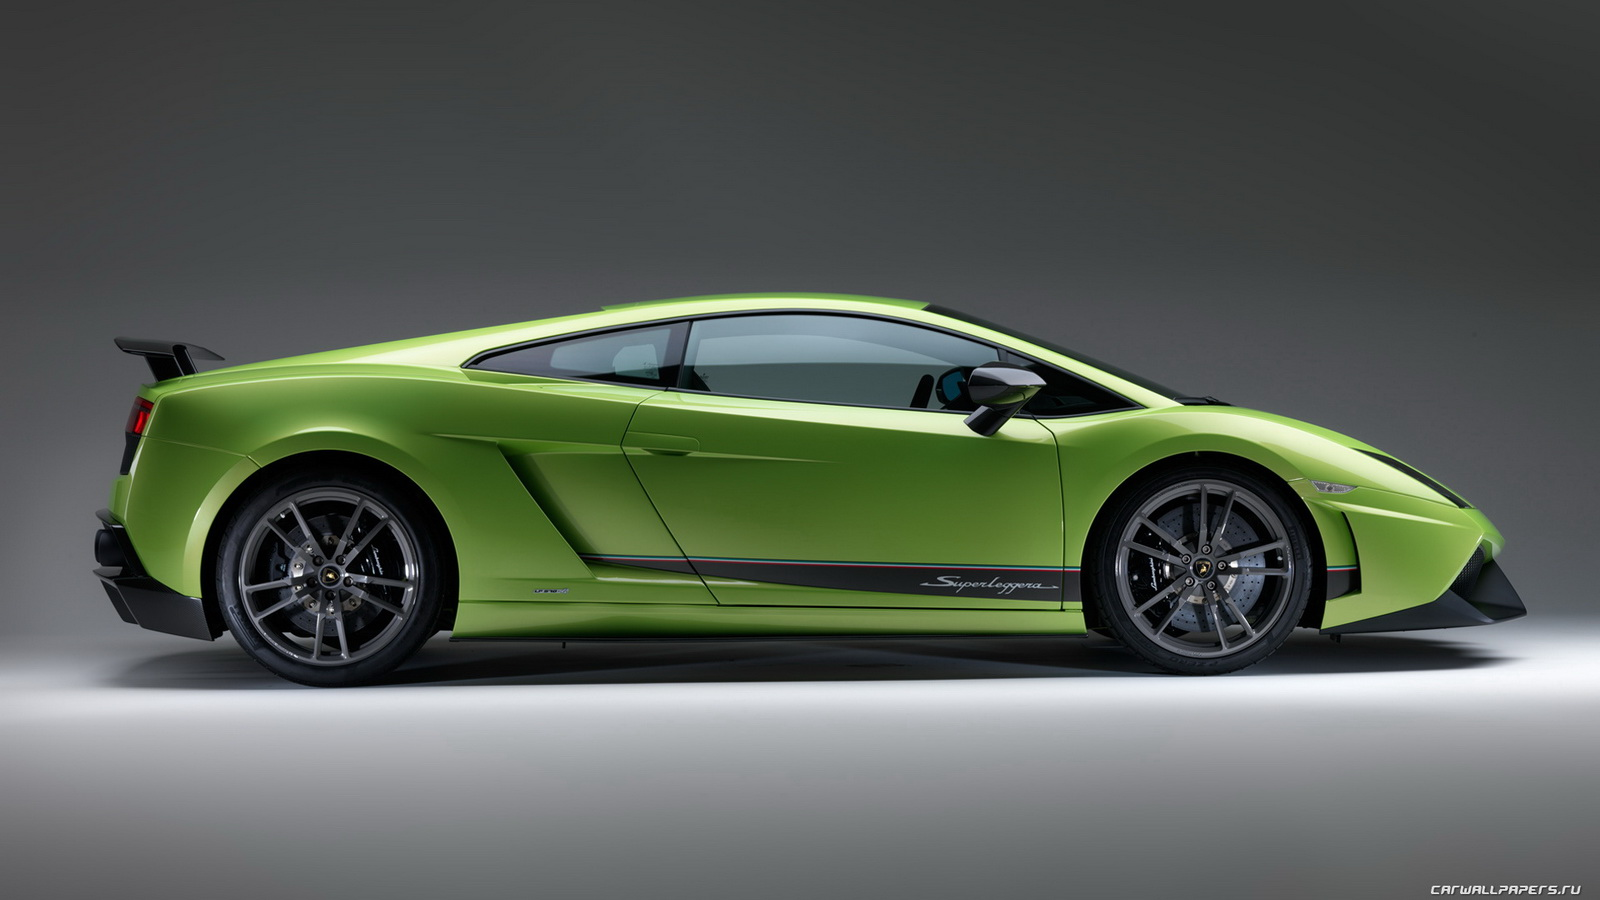 Lamborghini Gallardo Superleggera: 10 фото